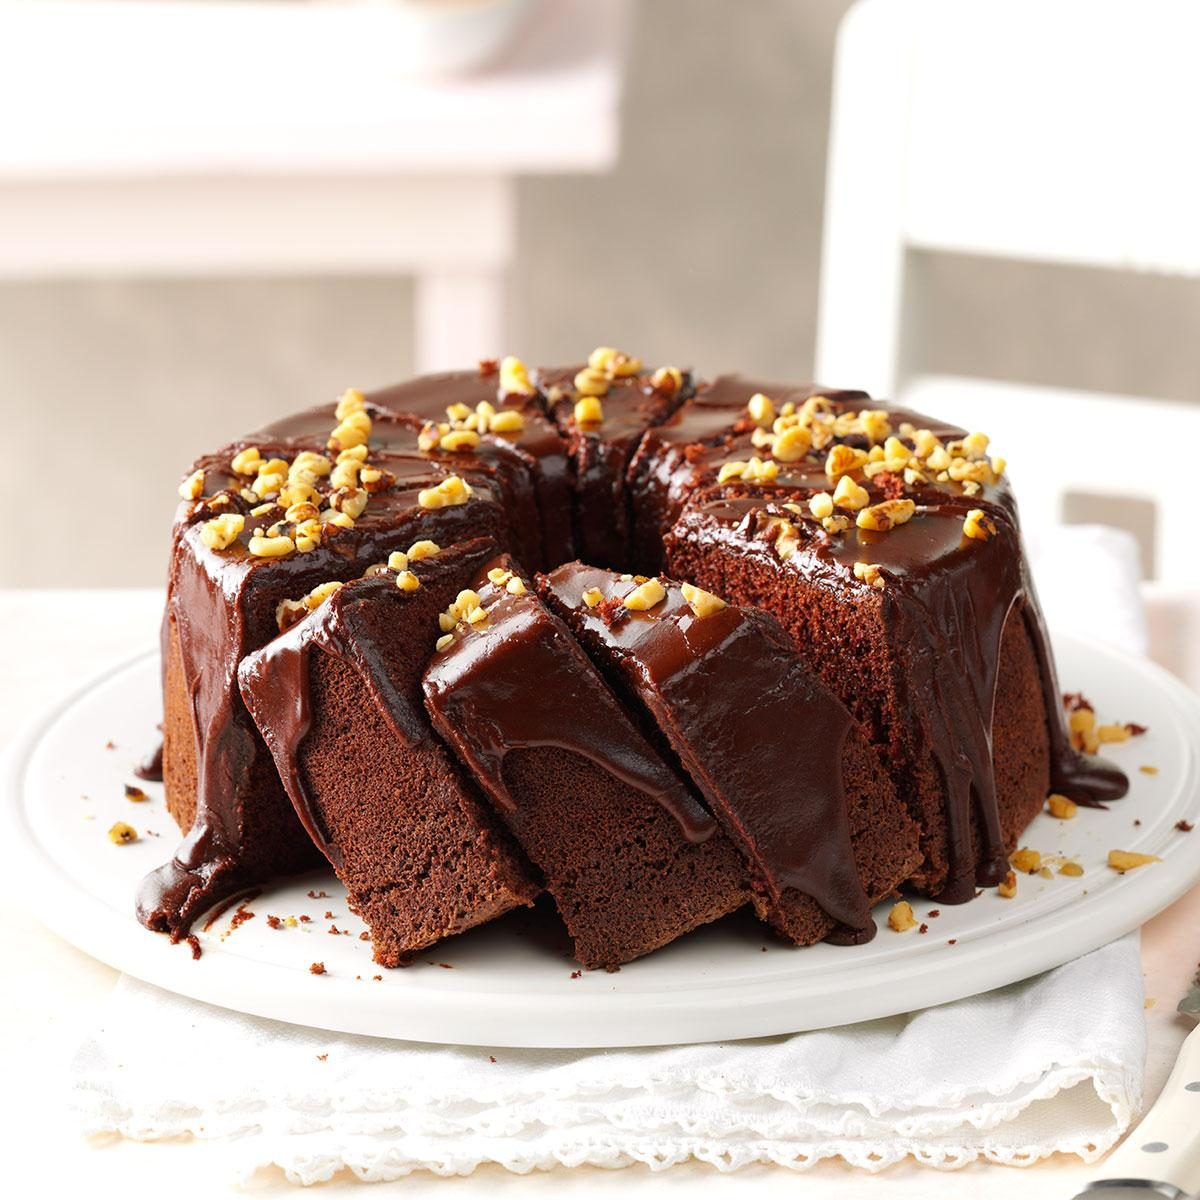 Taste Of Home Chocolate Cake Recipe